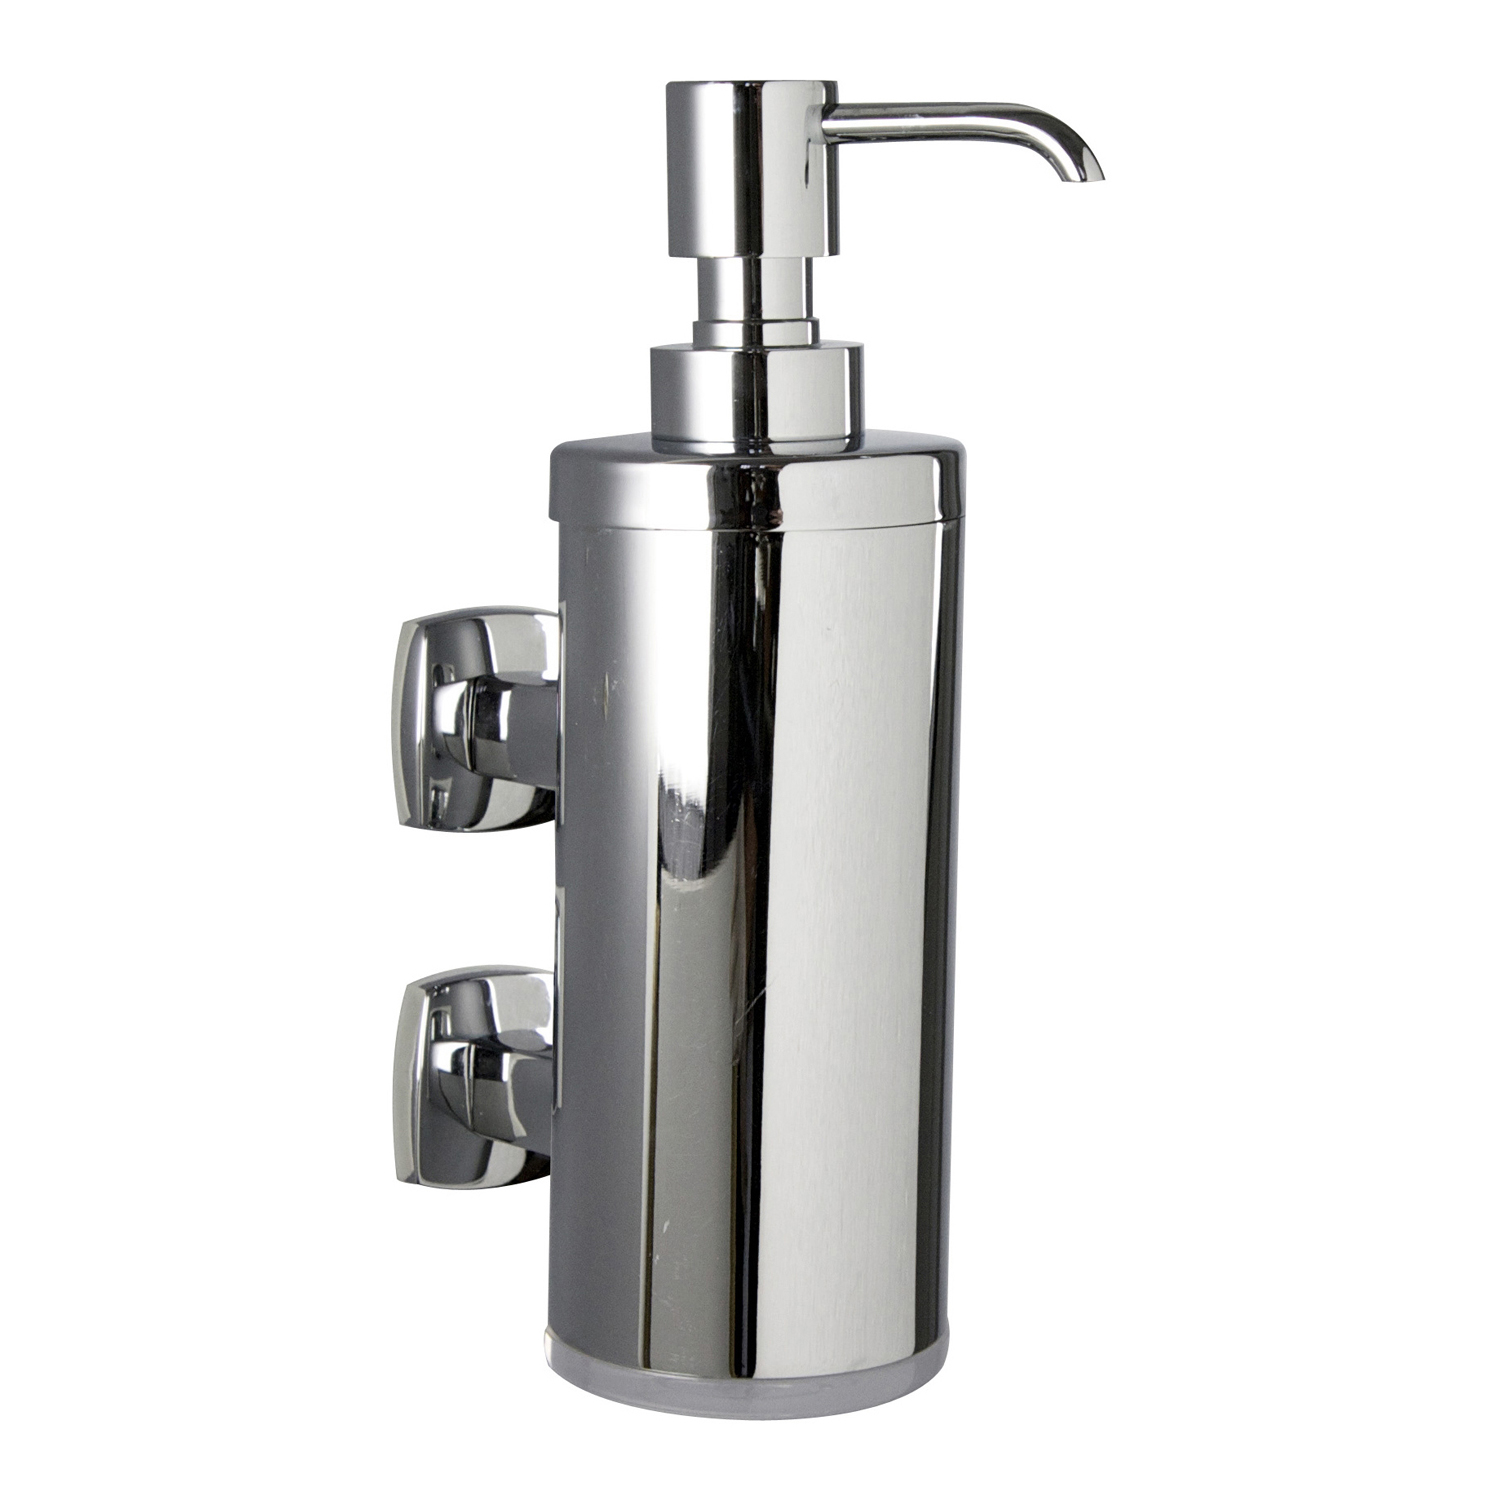 Image of Miller Denver Soap Dispenser